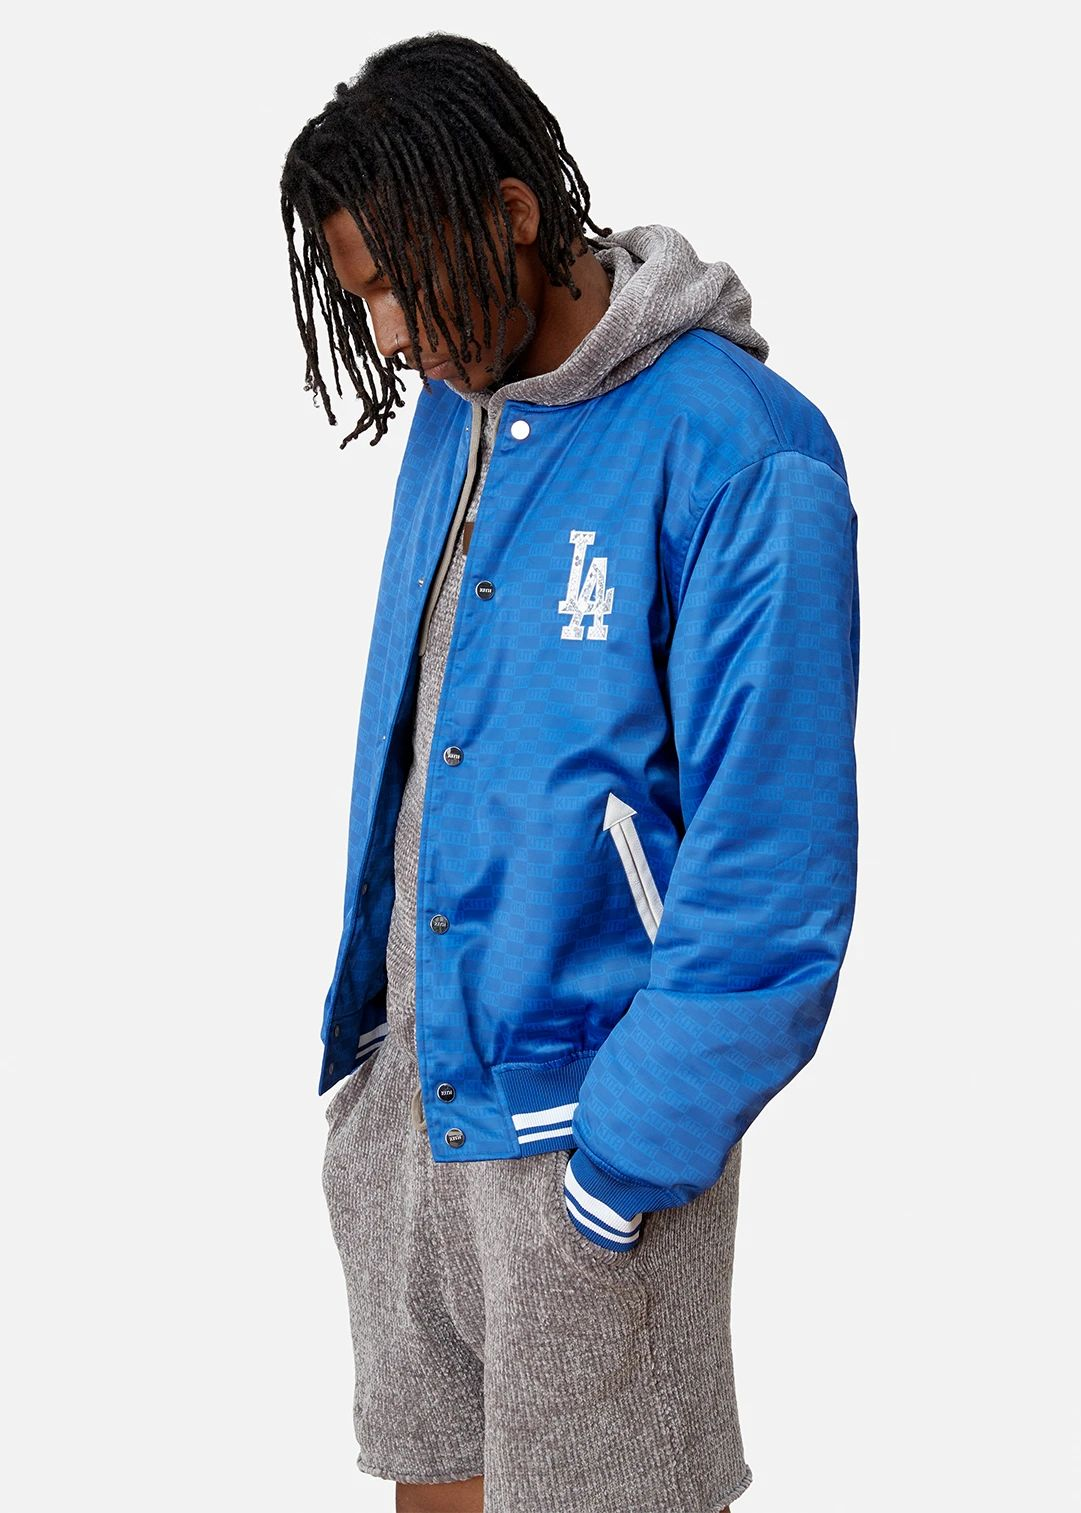 kith-fall-2020-kith-for-mlb-release-20200926